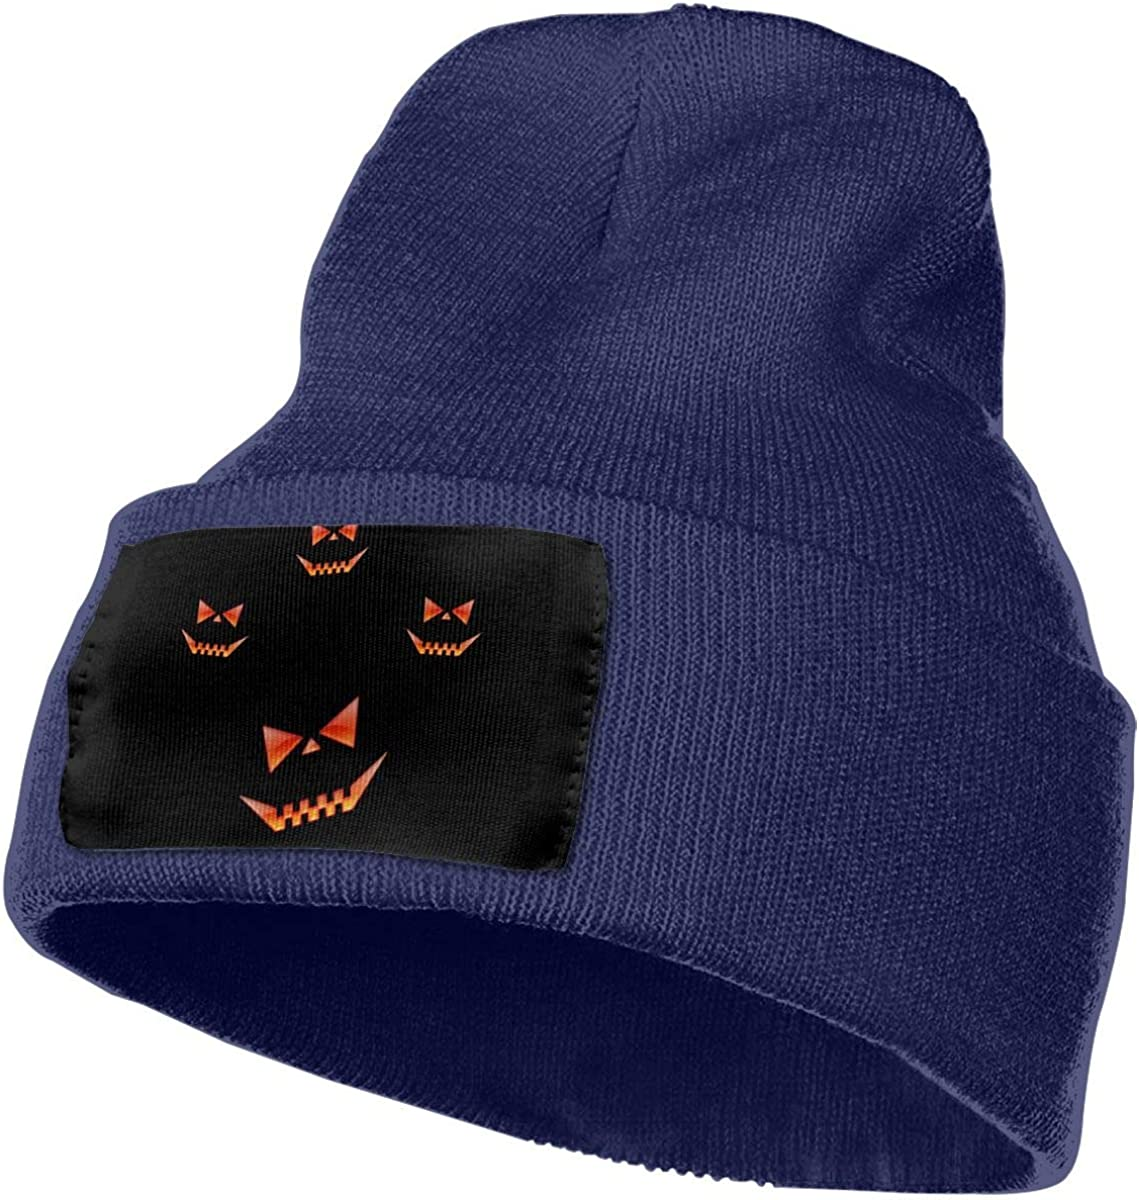 Pumpkin Lantern in The Dark Hat for Men and Women Winter Warm Hats Knit Slouchy Thick Skull Cap